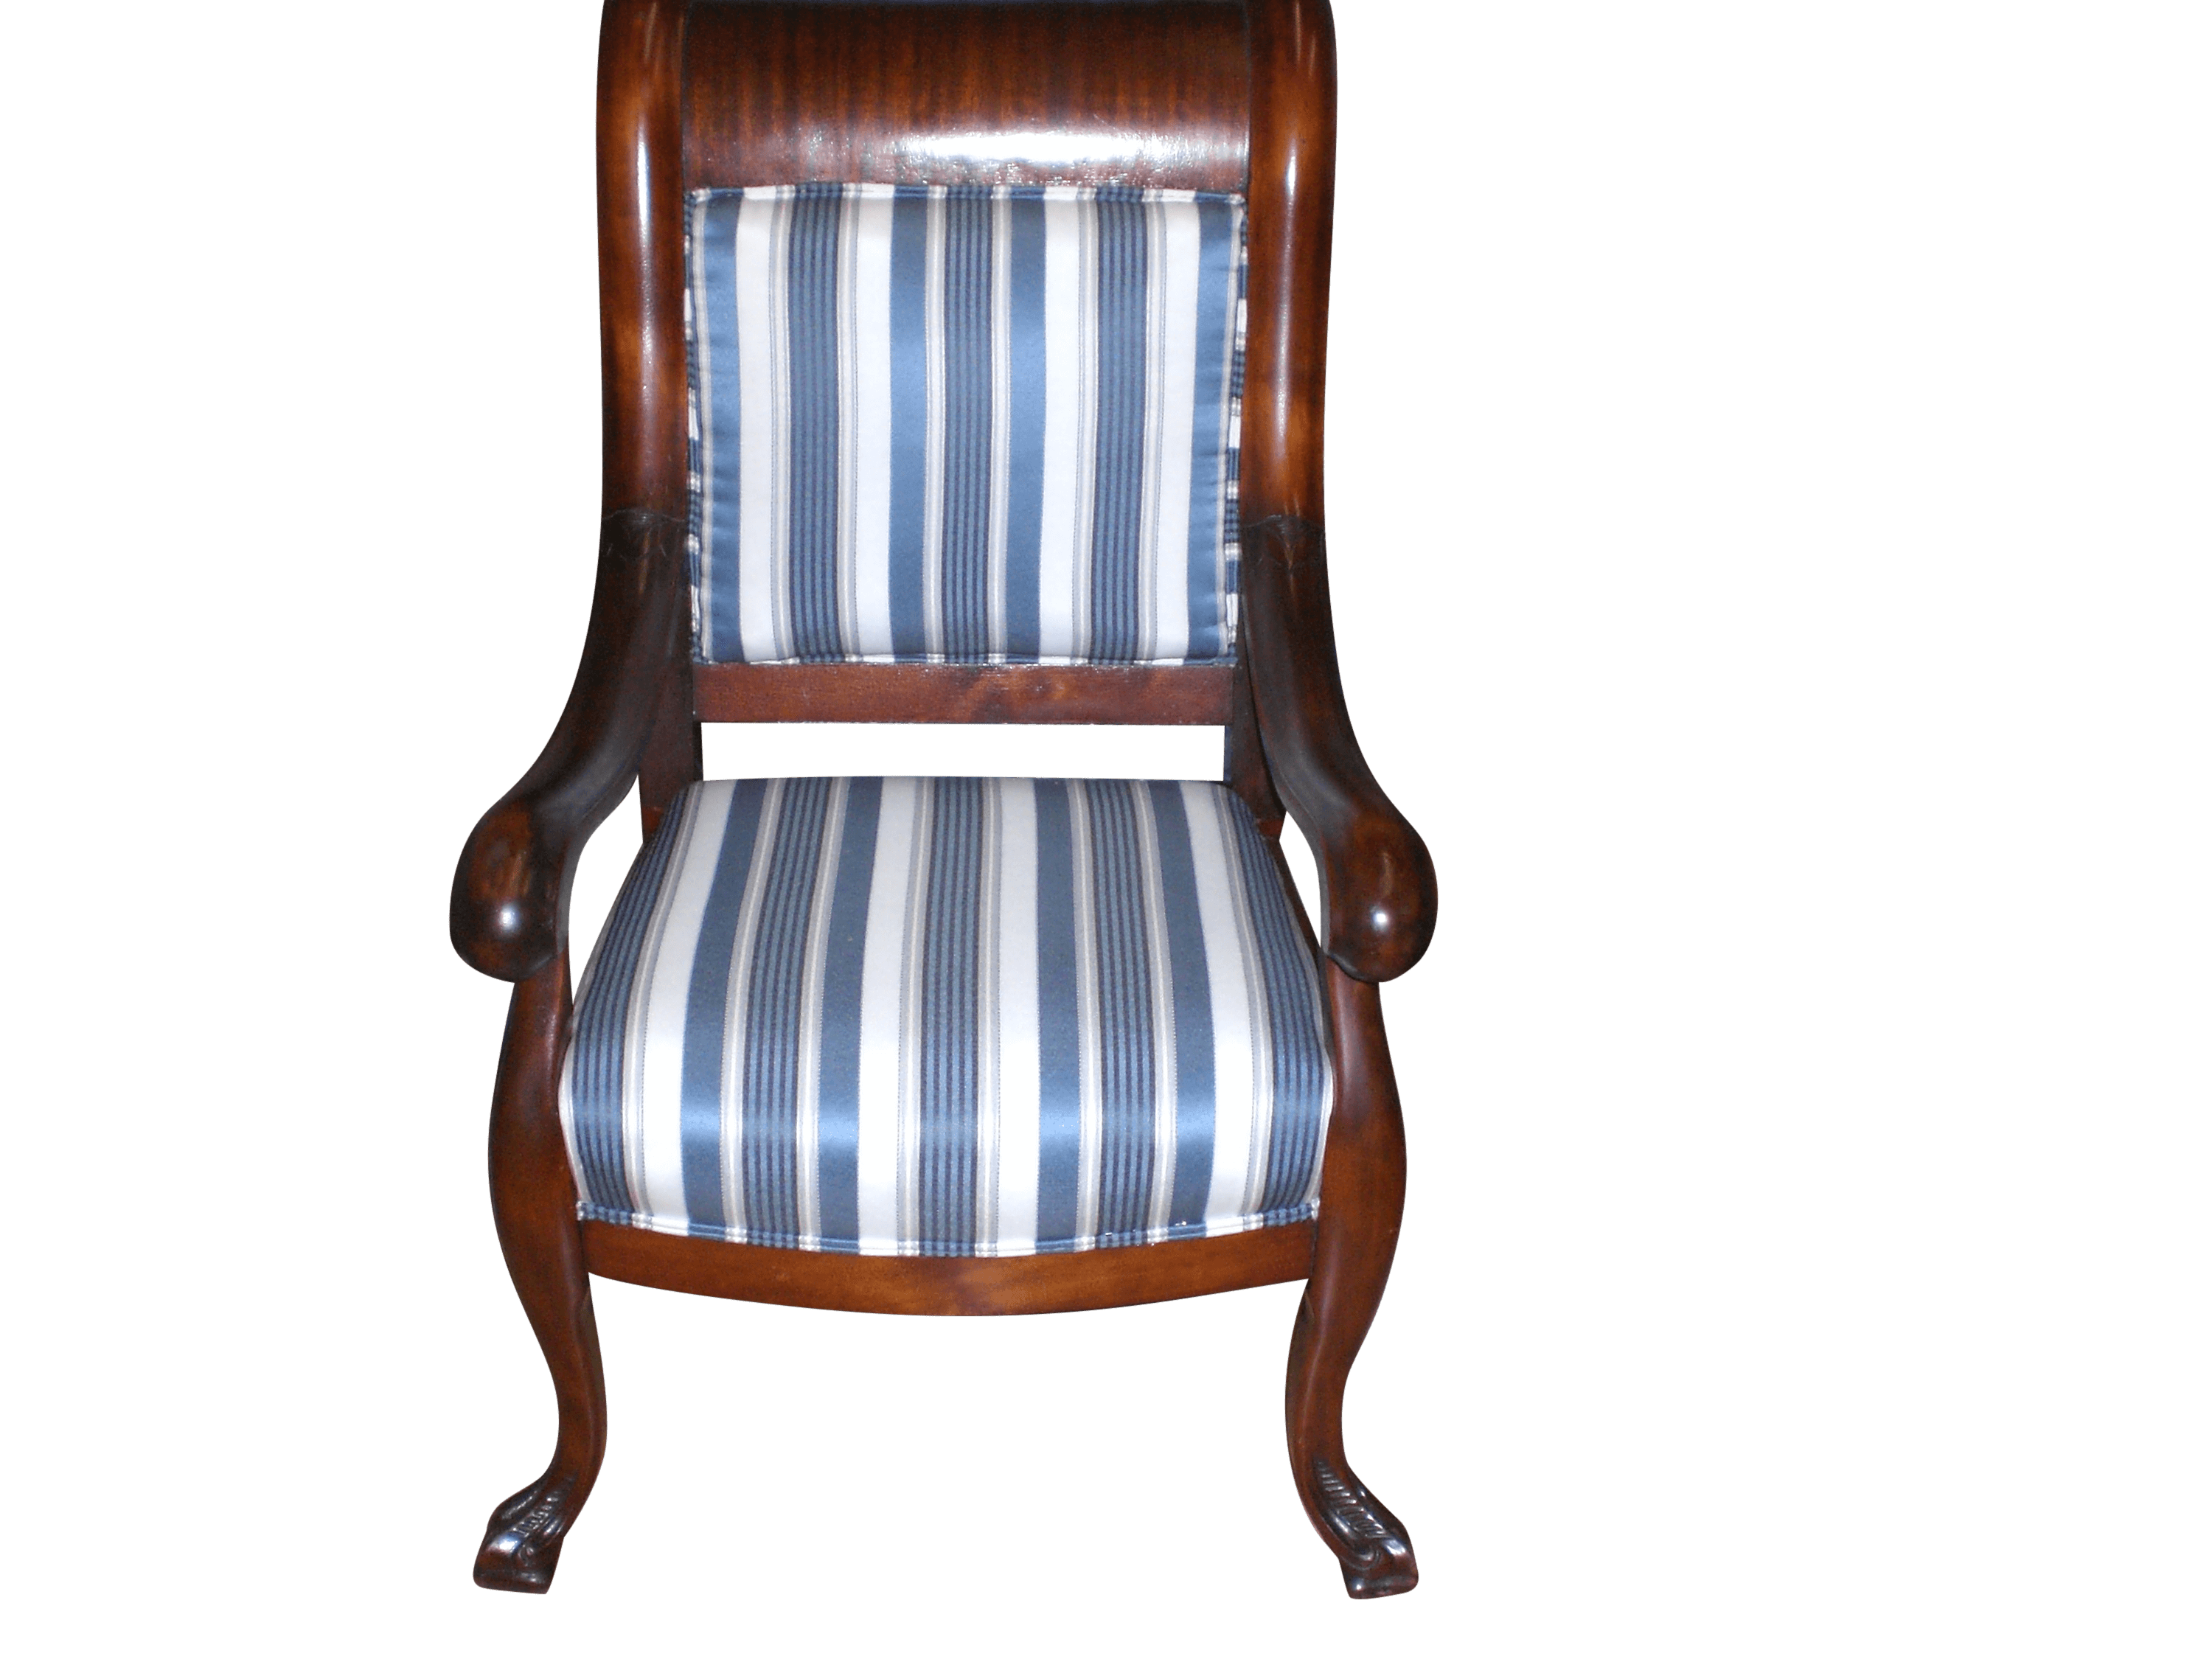 Re-upolstery of a wood framed arm chair